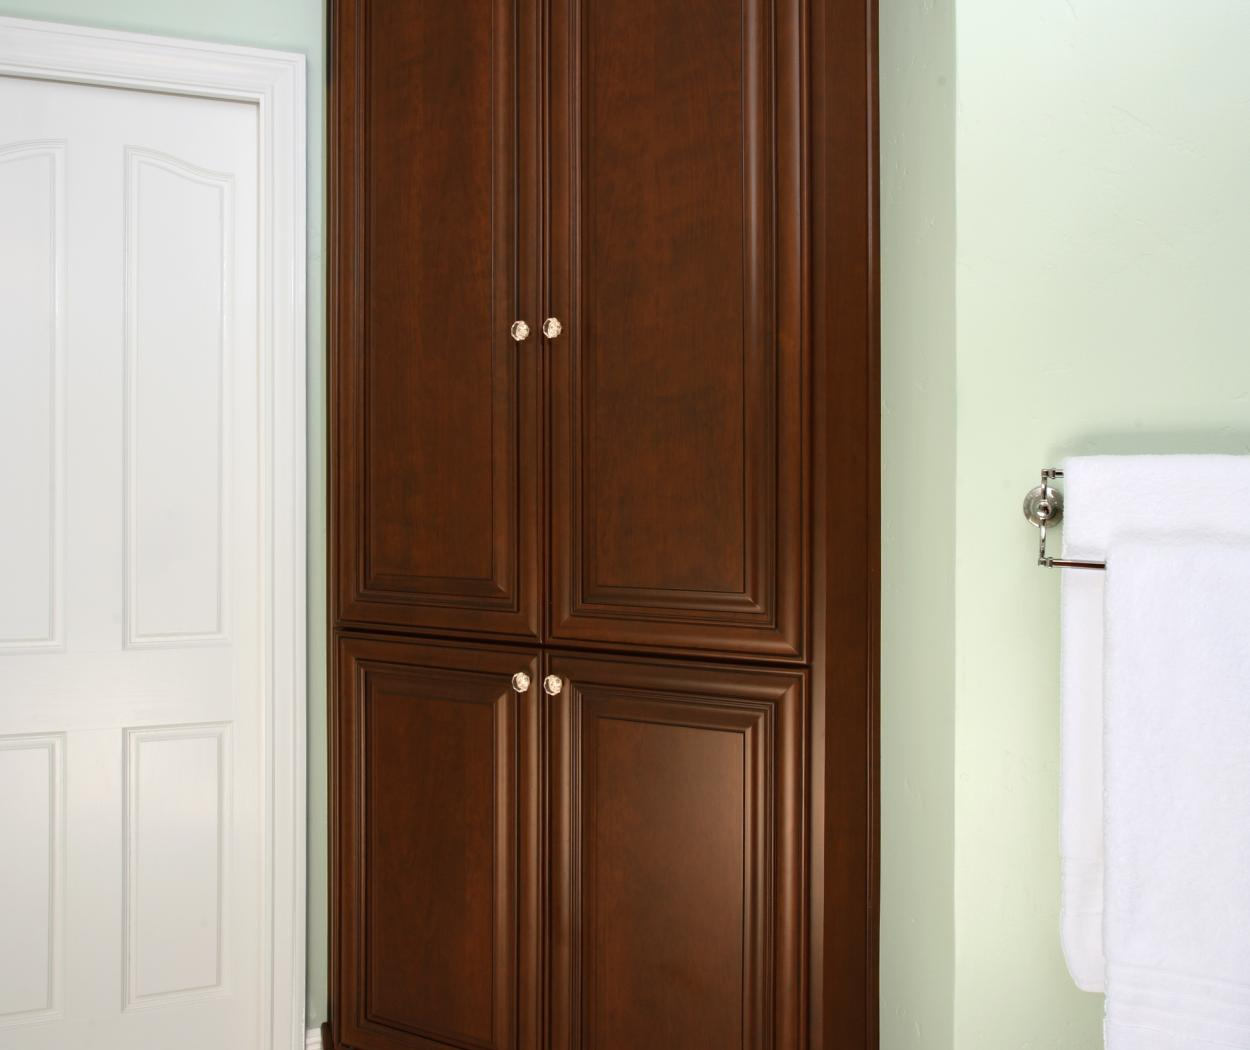 Traditional Chocolate Stained Bathroom Built-In with Diamond Shaped Knobs